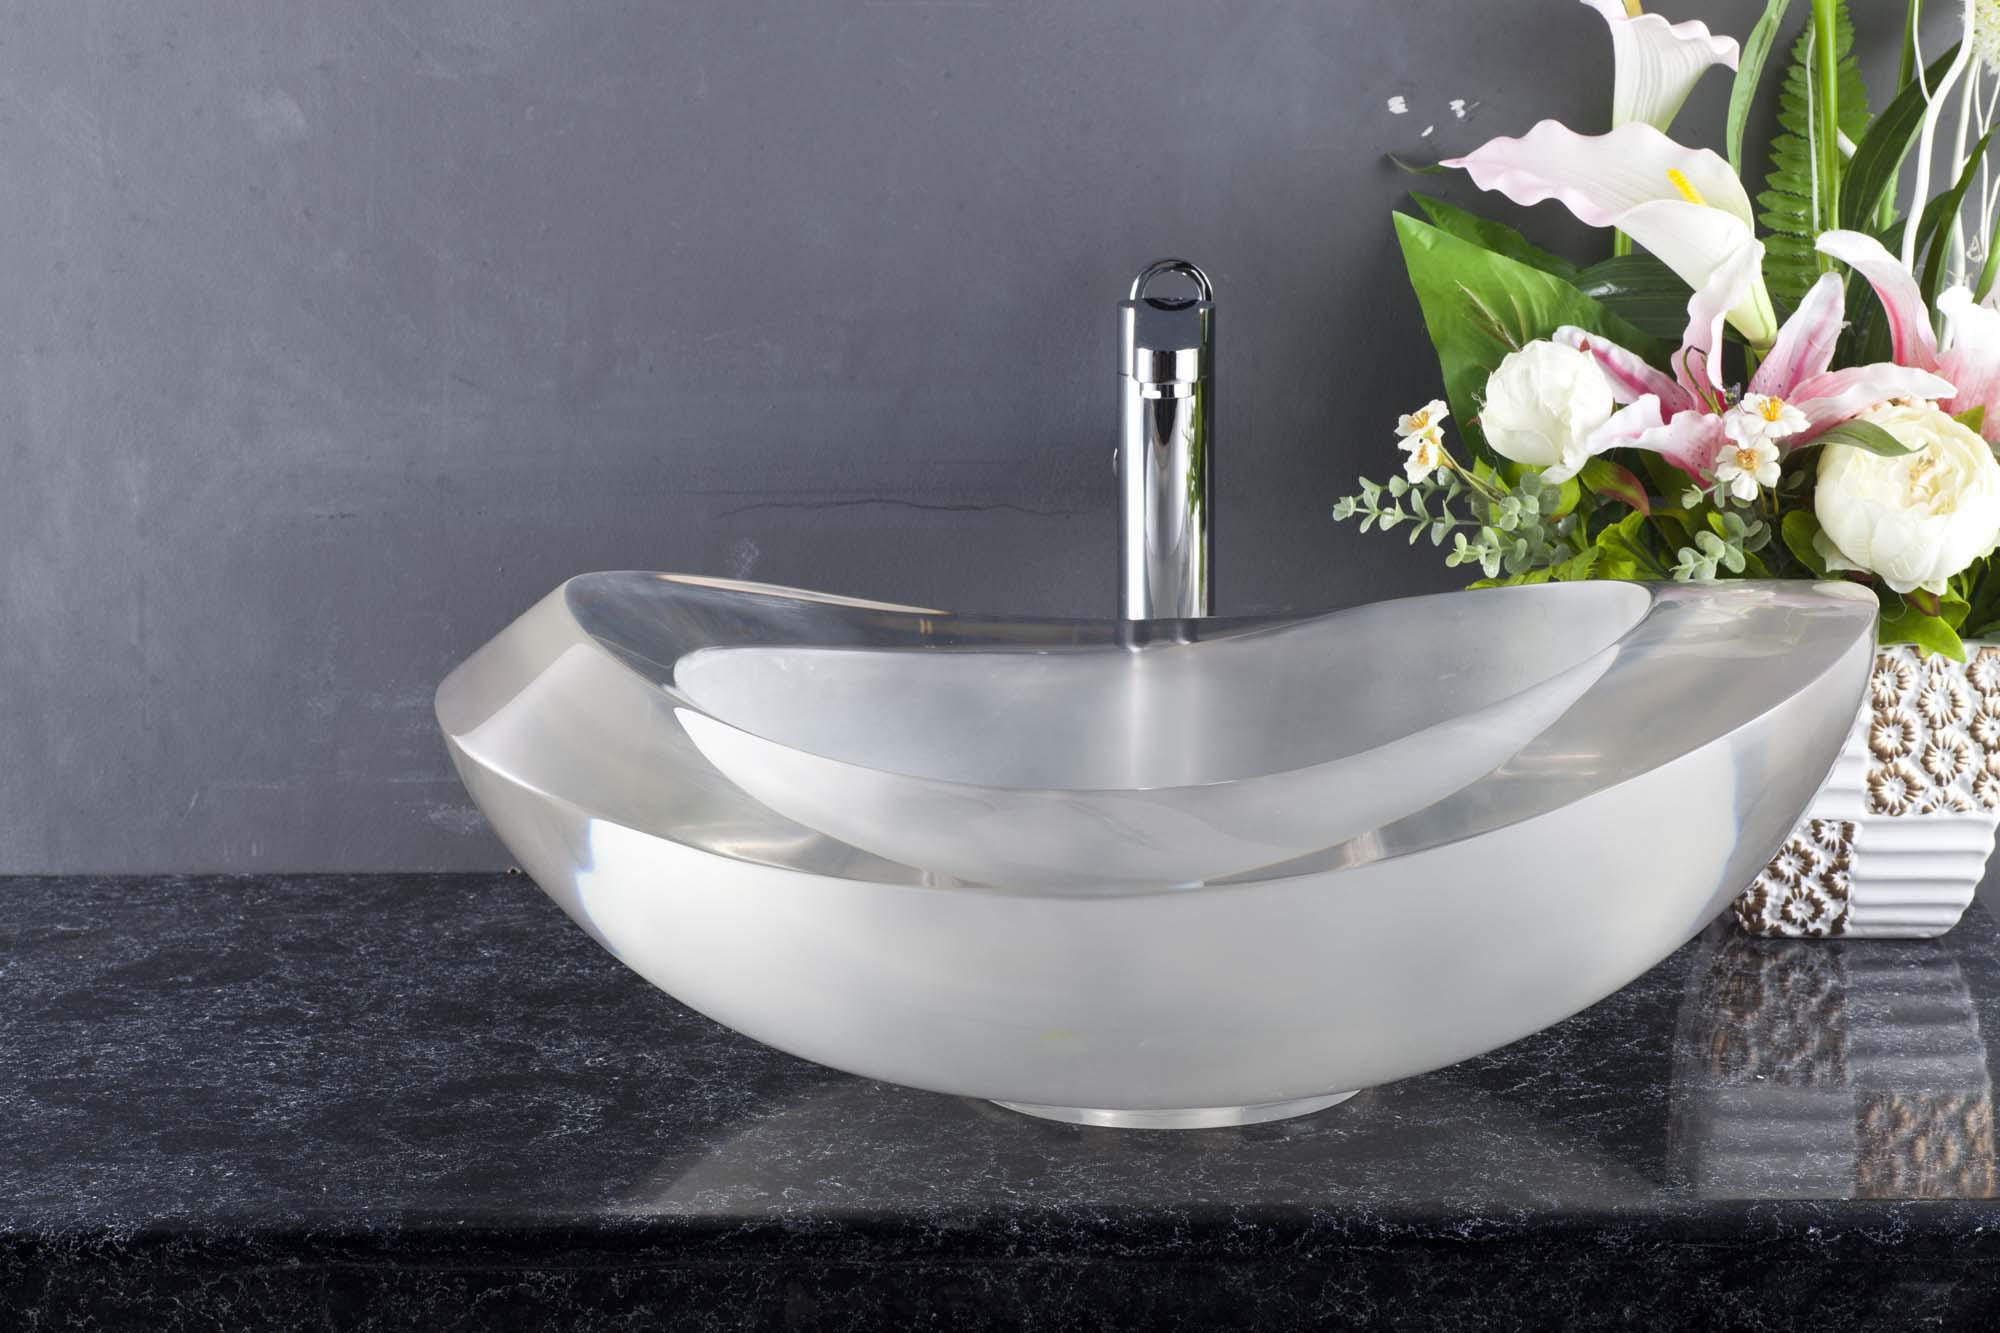 2017 European Style Translucent Resin Bathroom Sinks Wash BasinsItem Ax1003  From Gelandy, $179.16 | Dhgate.Com Nice Design